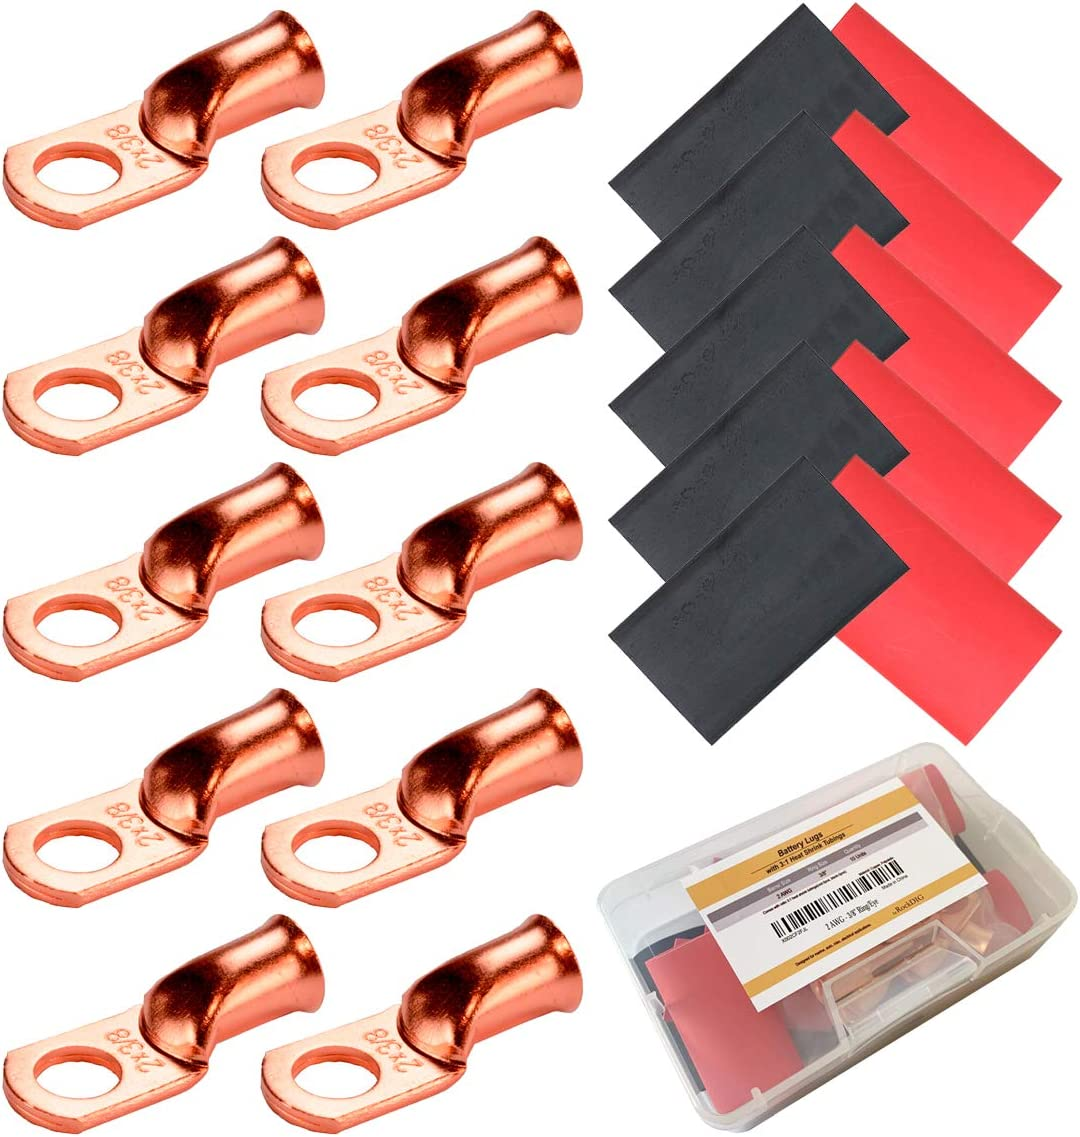 Black, Red RockDIG Heavy Duty Copper Wire Lugs Bare Copper Eyelets Tubular Ring Terminal Connectors with Heat Shrink Battery Cable Ends